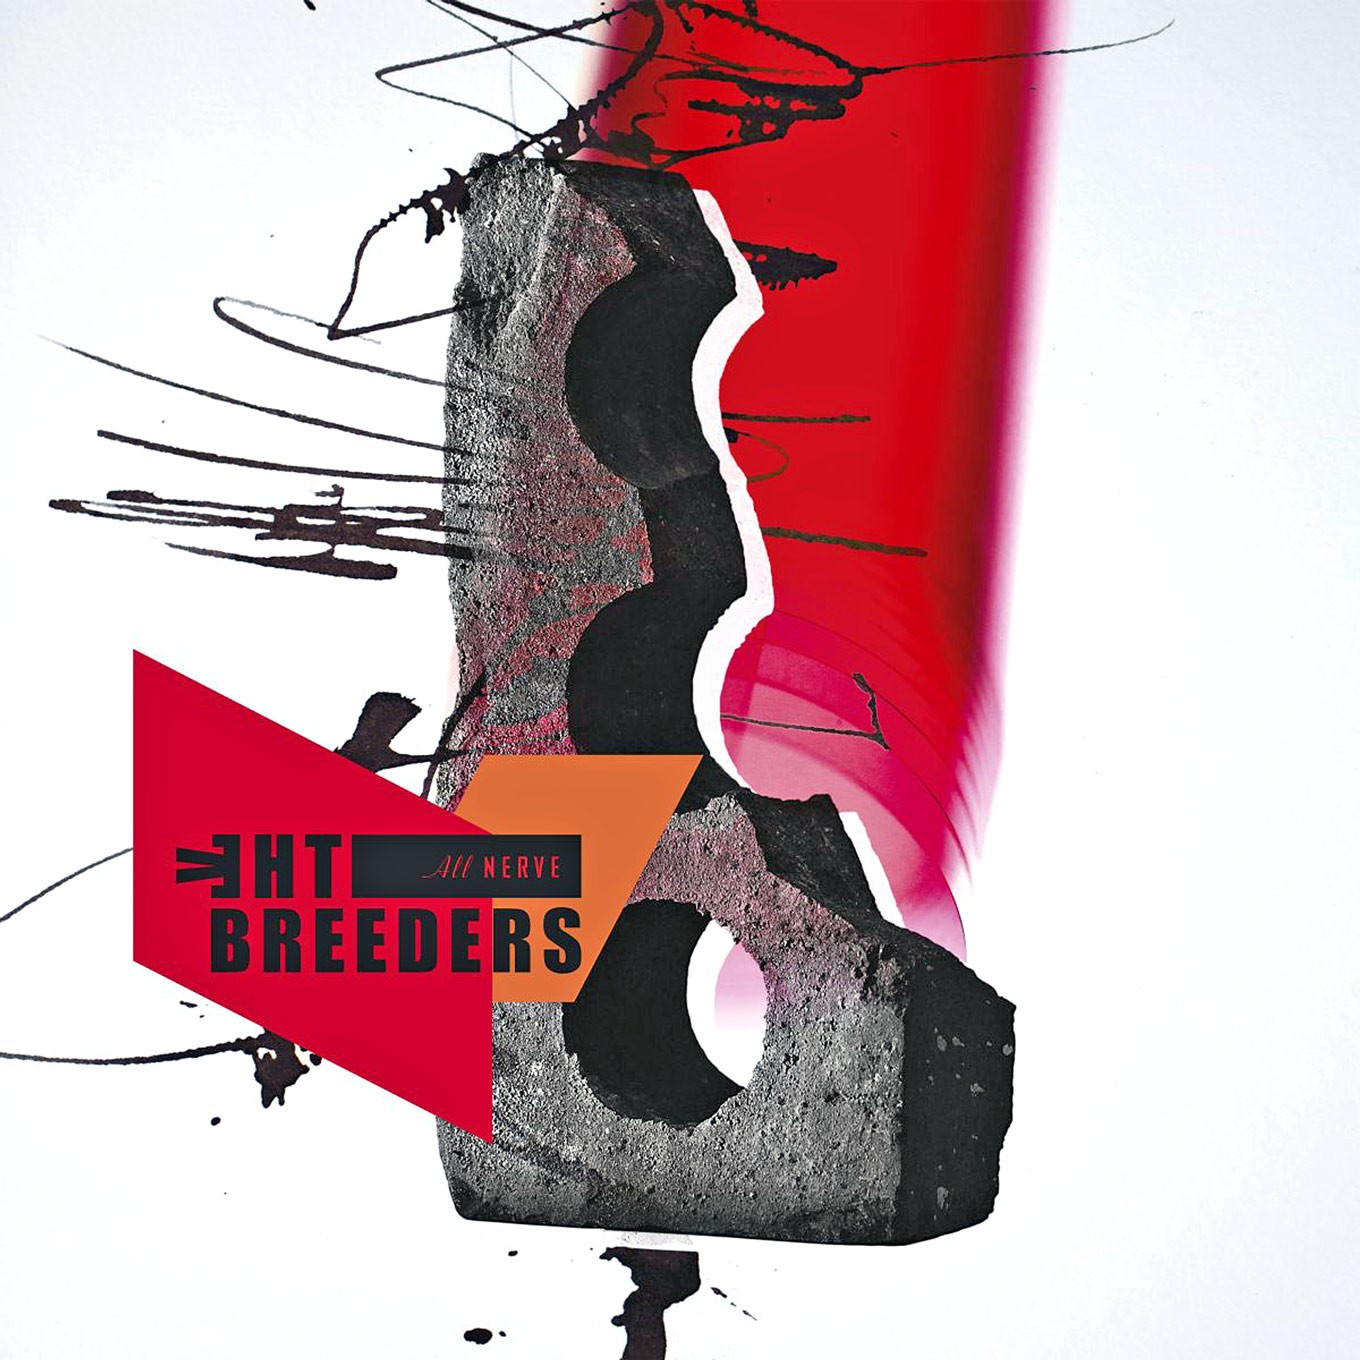 Album review: 'All Nerve' by The Breeders